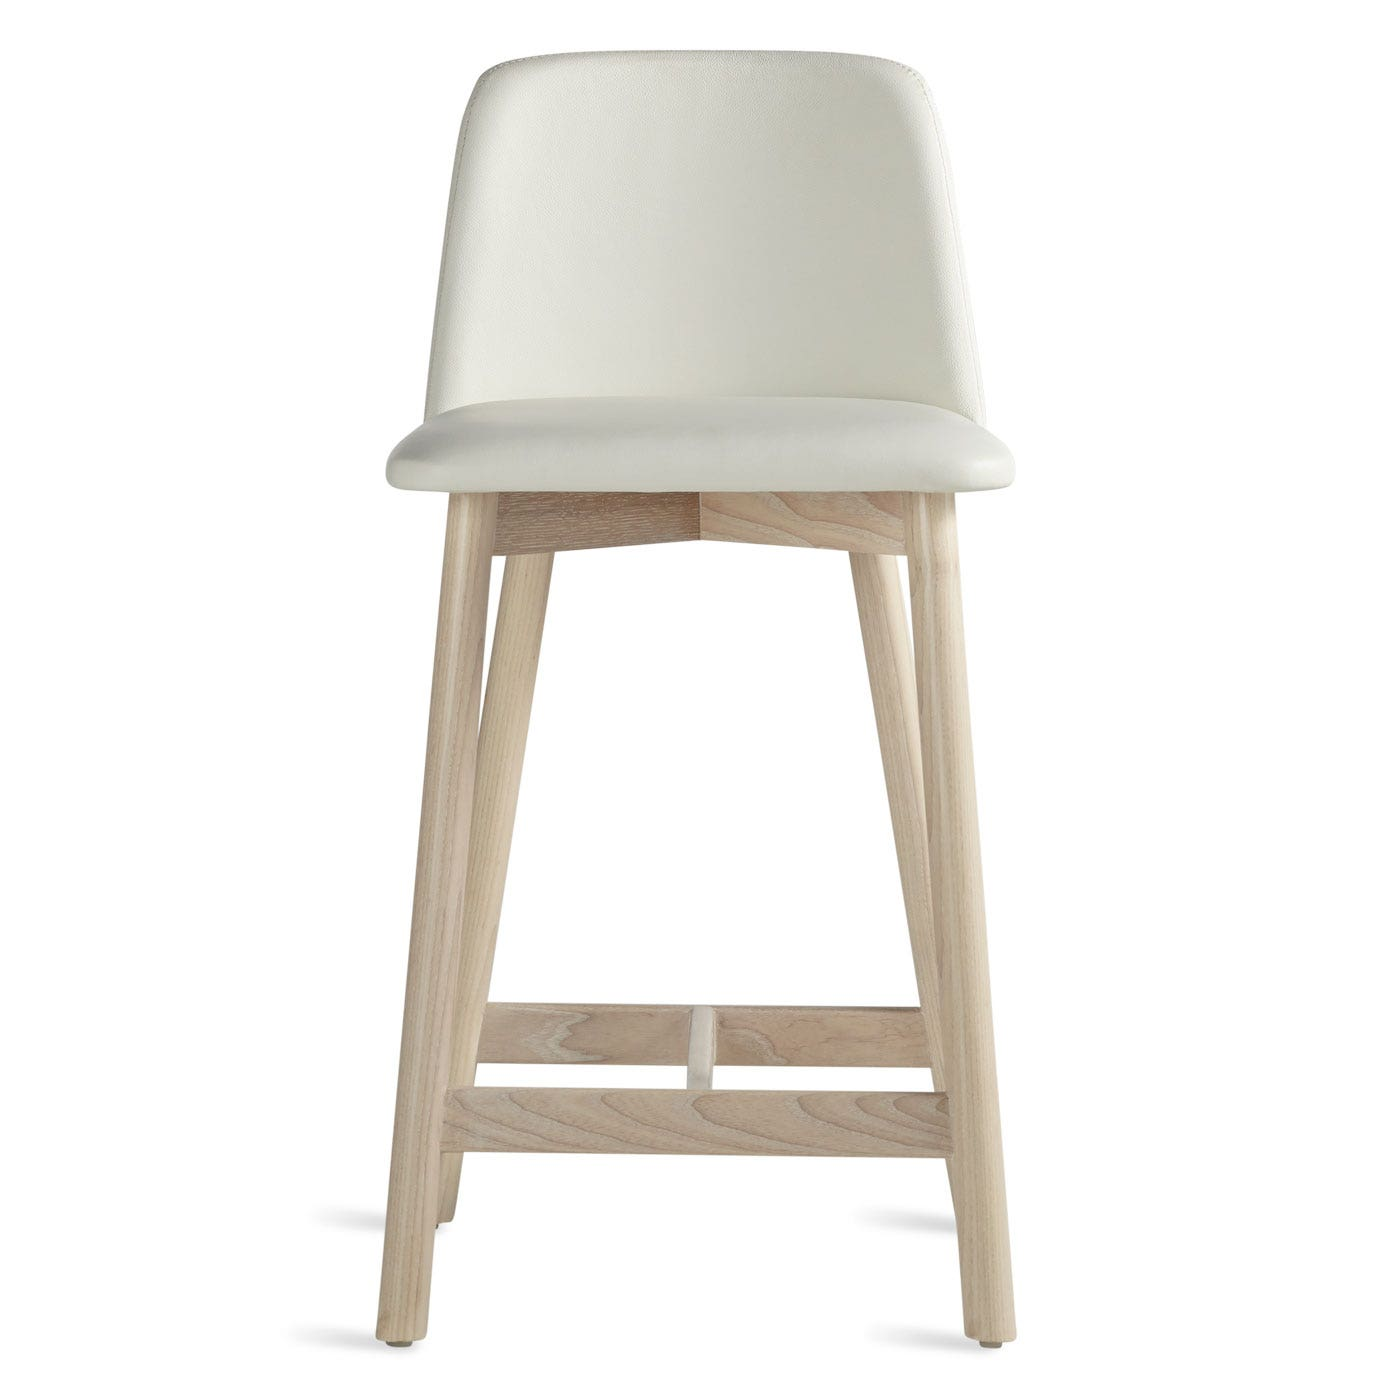 Wicket Counterstool Modern Seating Blu Dot